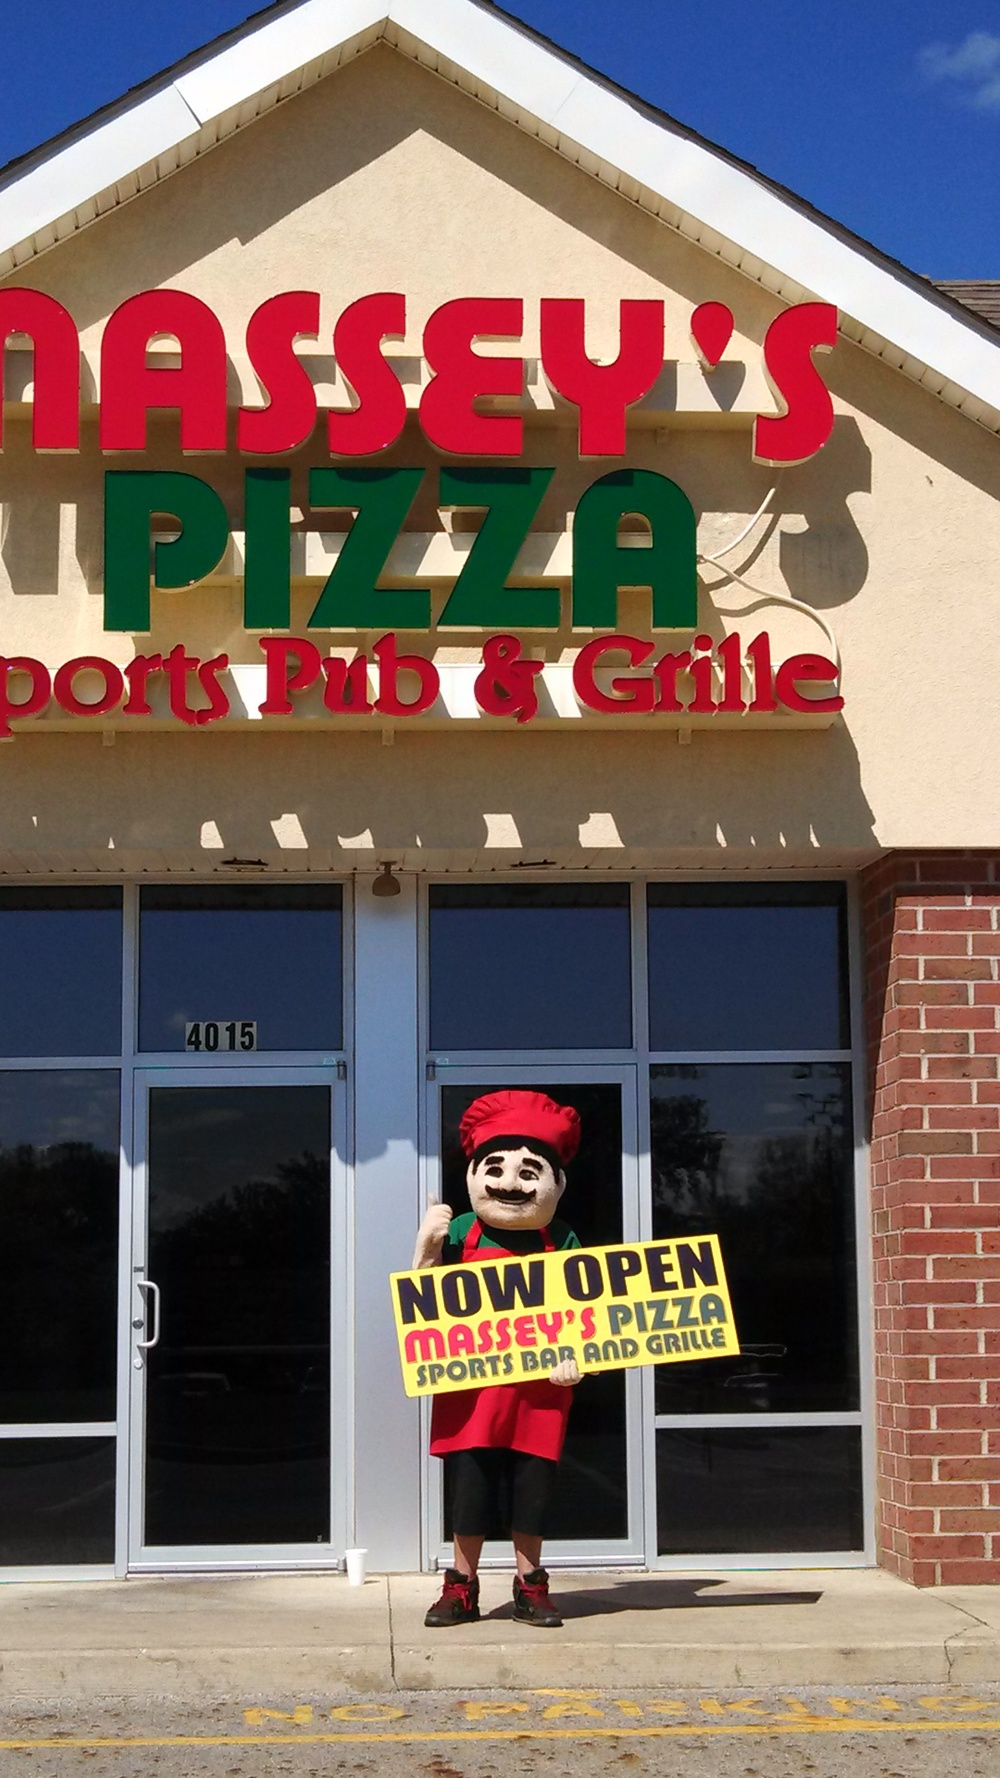 guido with now open sign.jpg